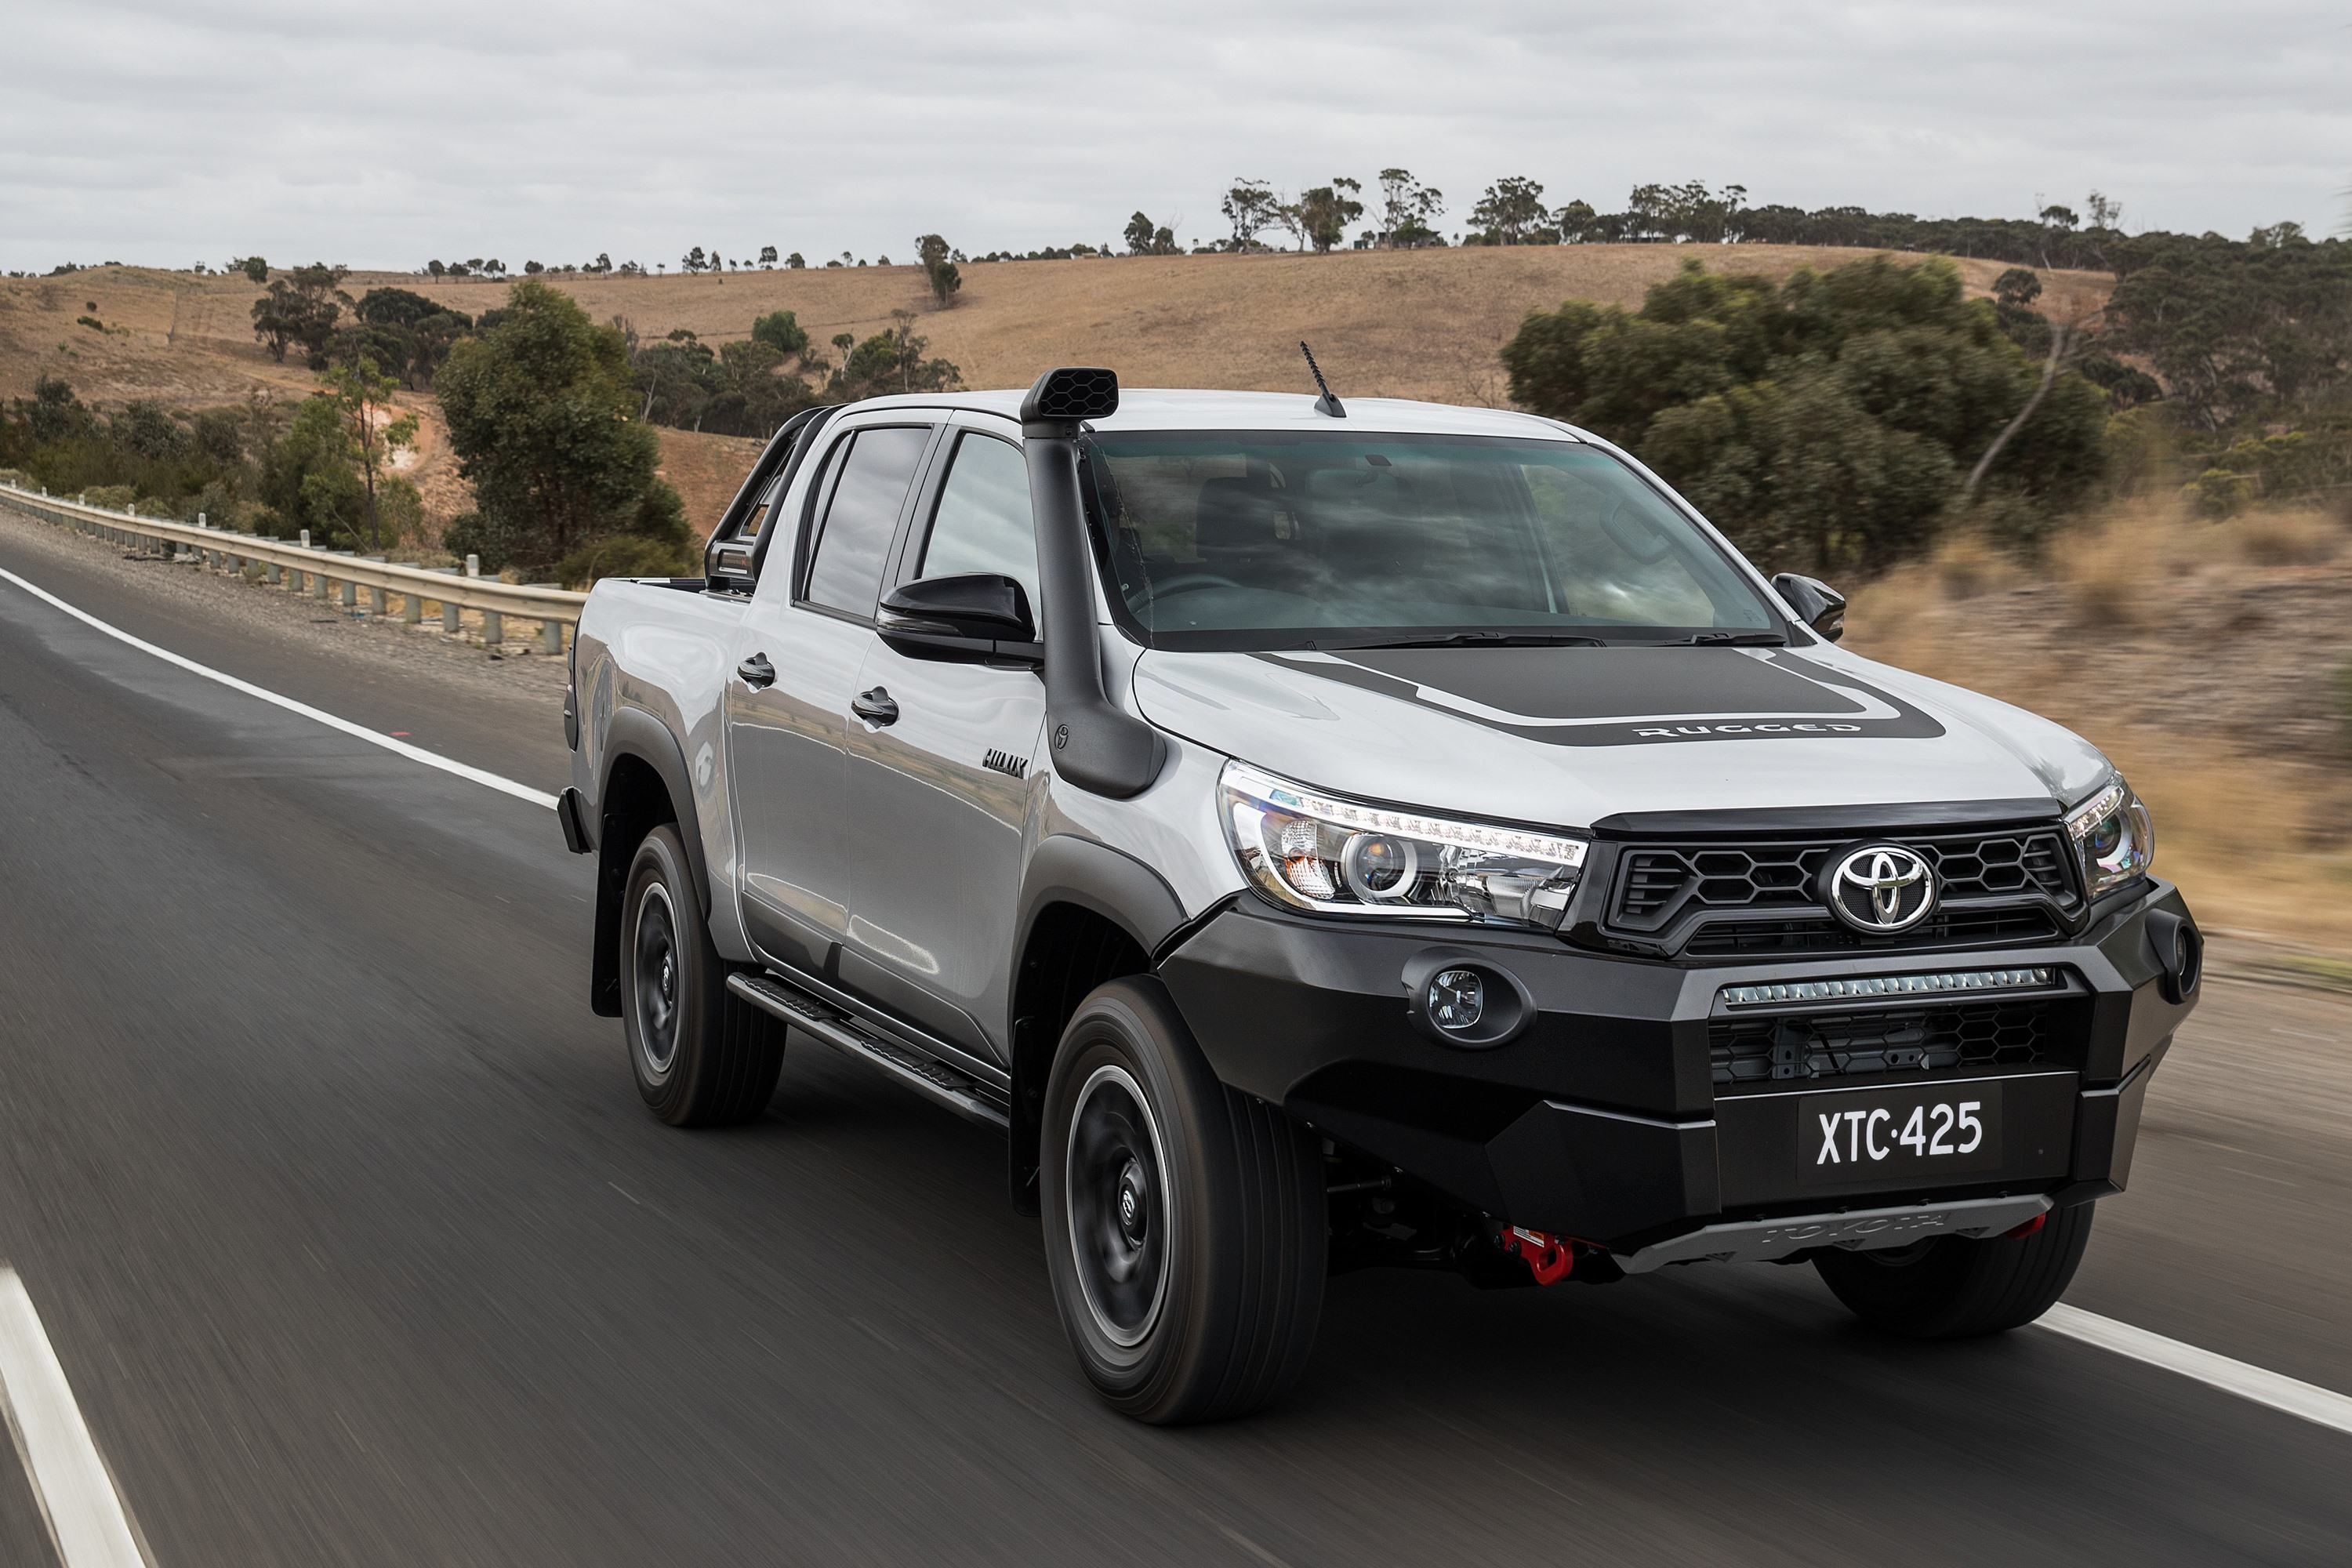 2019 Toyota HiLux Rugged X Review - Ute Guide